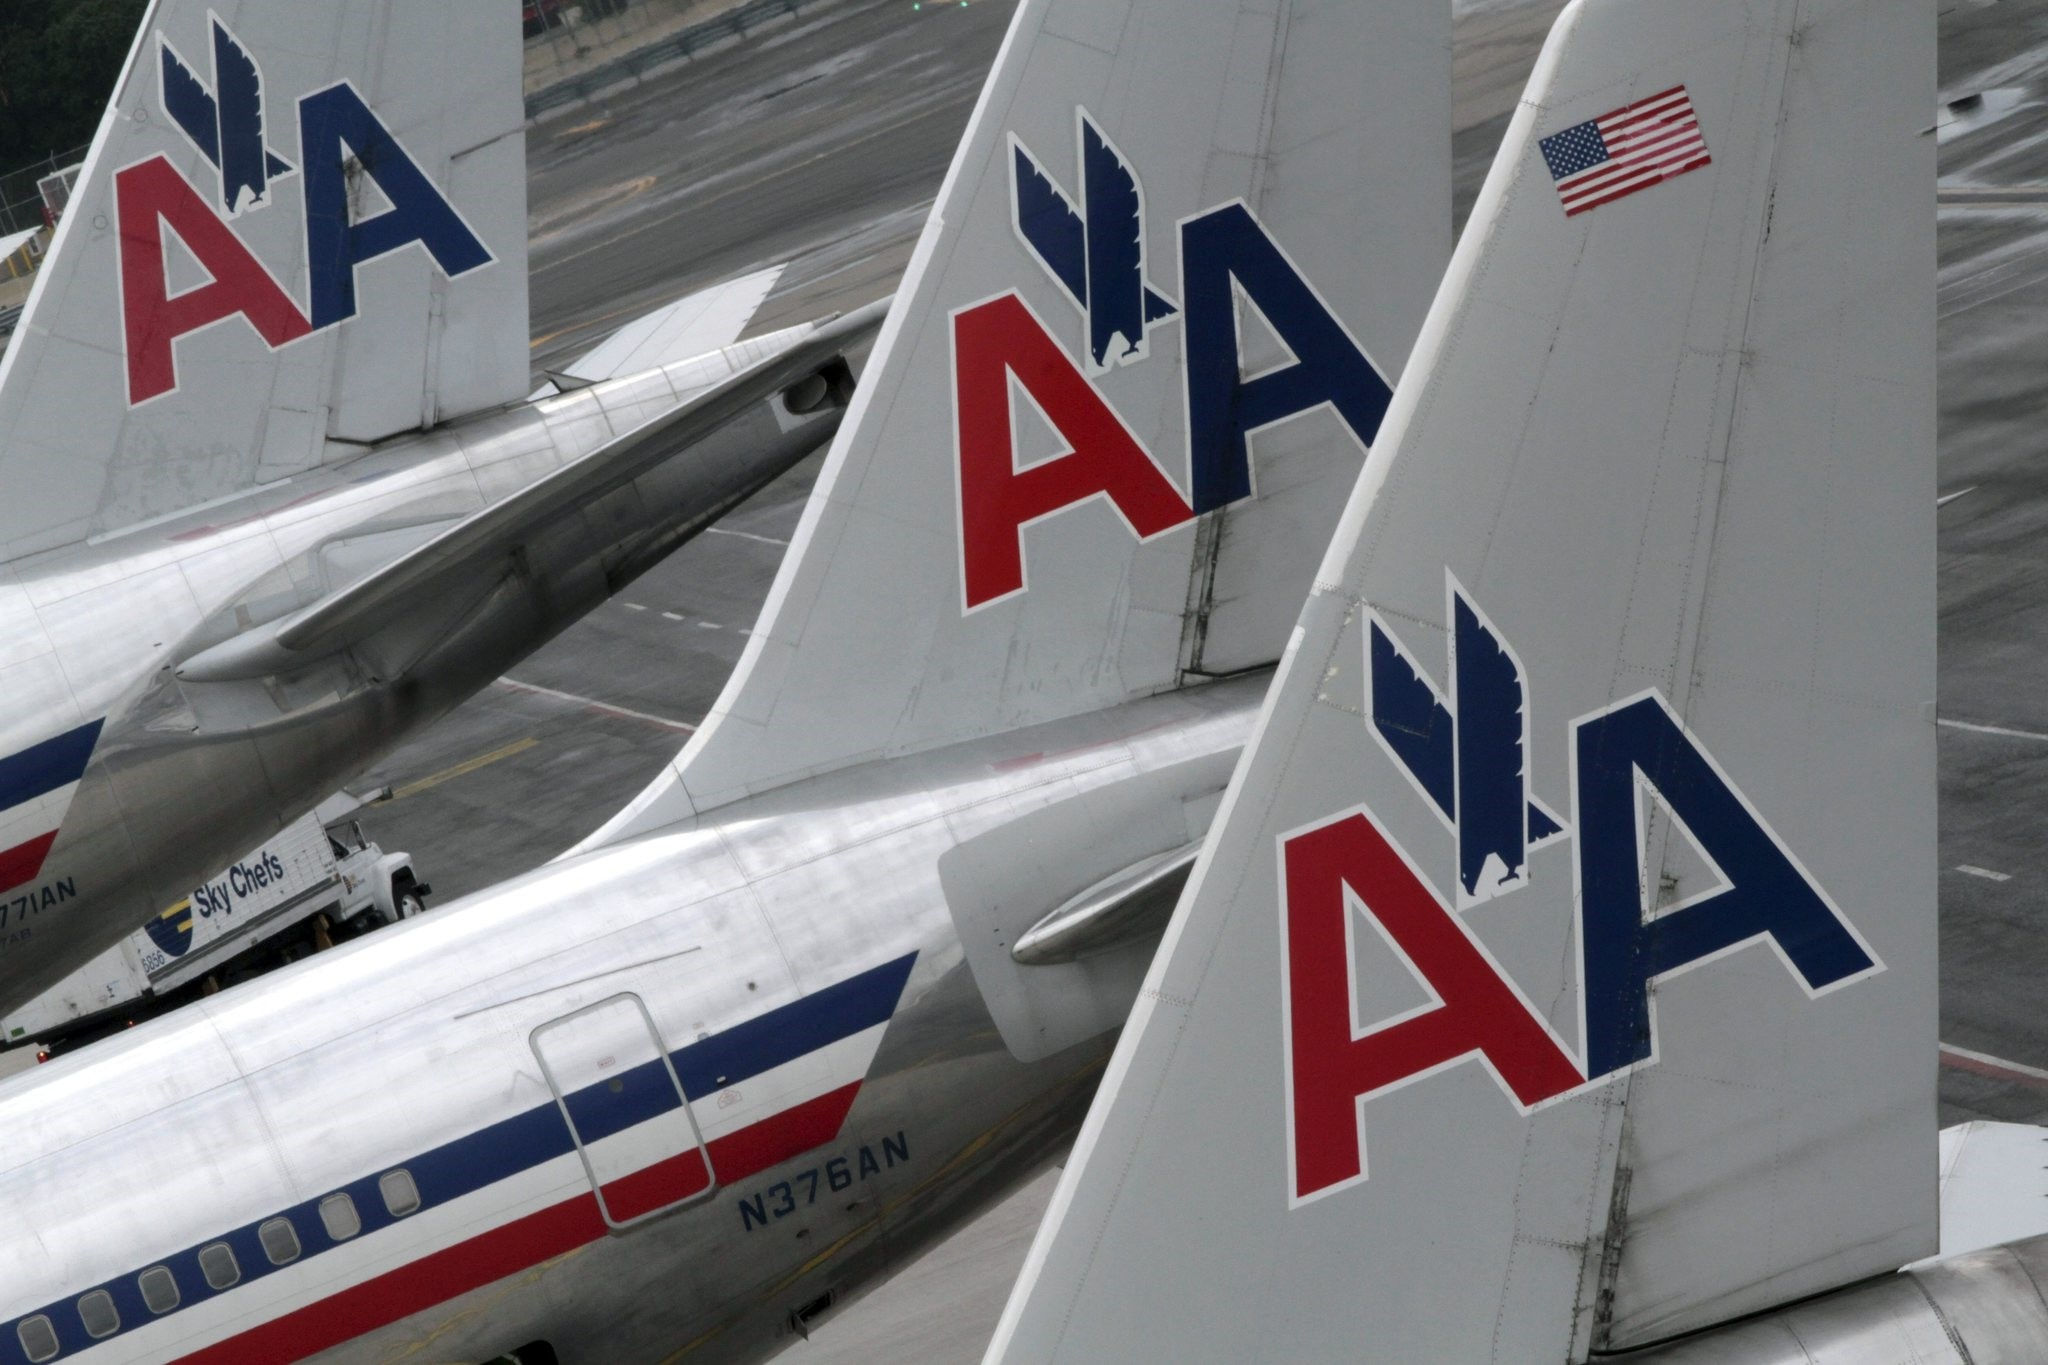 In this Wednesday, Aug. 1 2012 file photo, American Airlines airplanes are parked at their gates at JFK International airport in New York. (AP Photo)